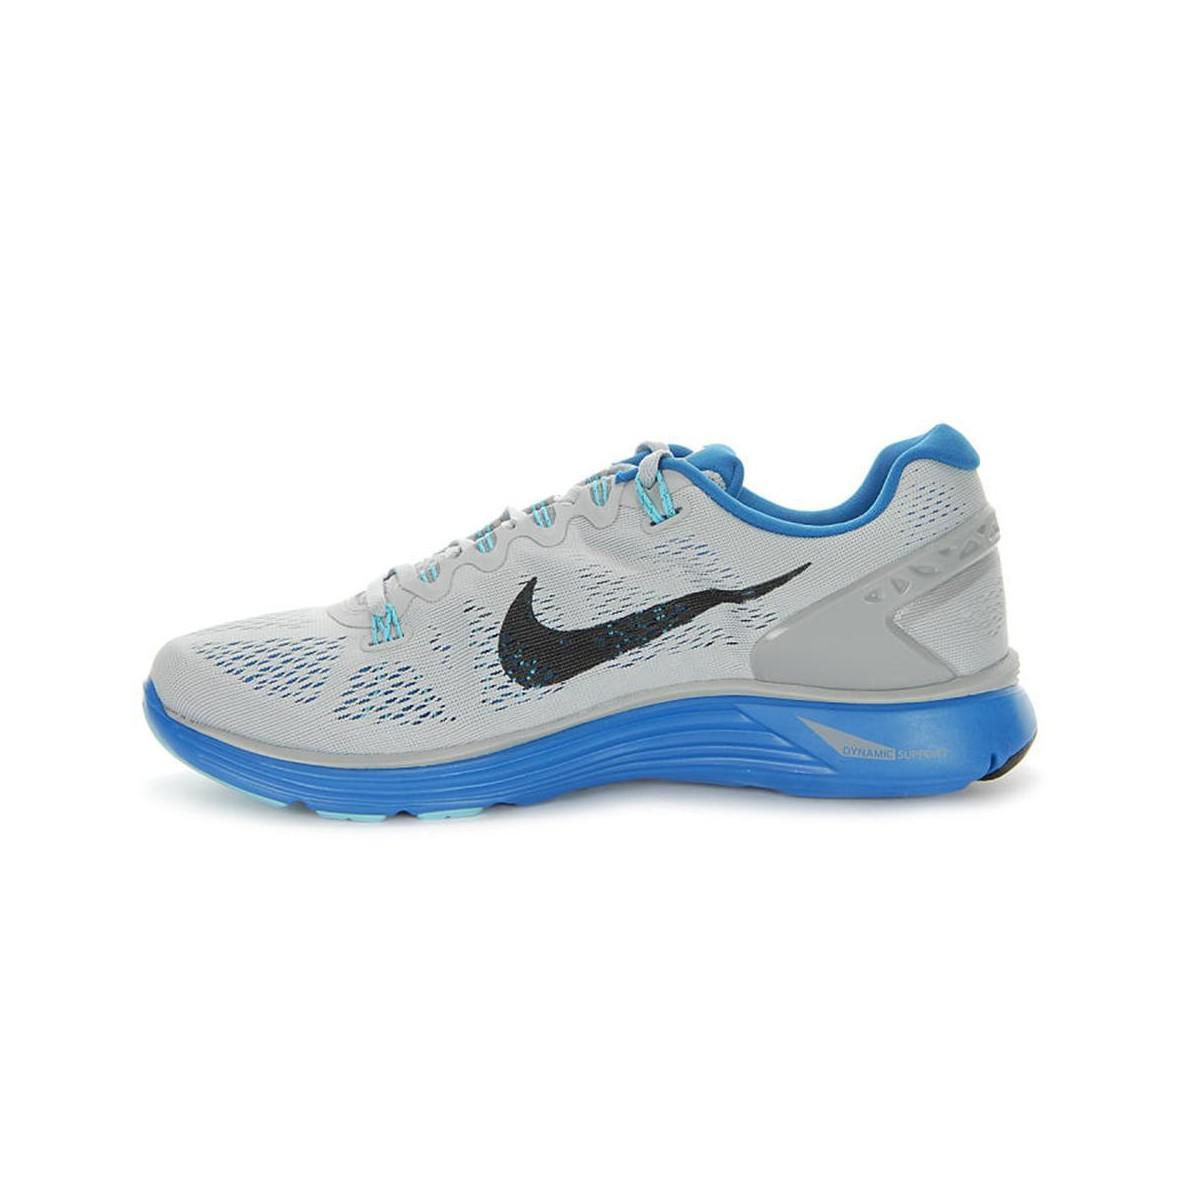 66c9d6f1e98e Nike Lunarglide 5 Men s Running Trainers In Grey in Gray for Men - Lyst